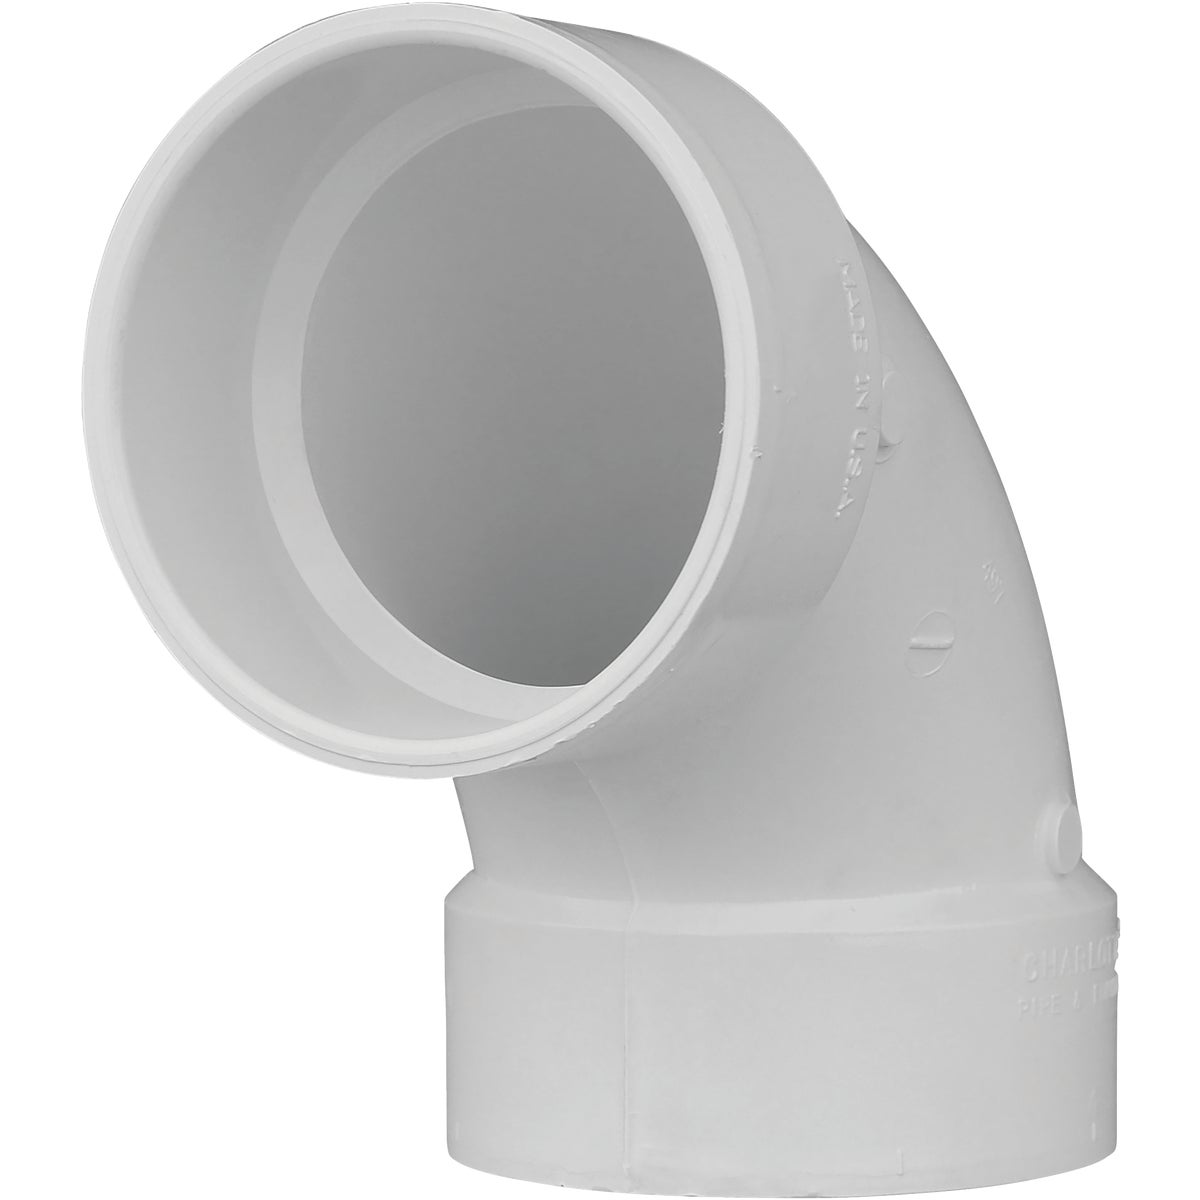 "4""90D DWV SANITARY ELBOW - 72840 by Genova Inc  Pvc Dwv"